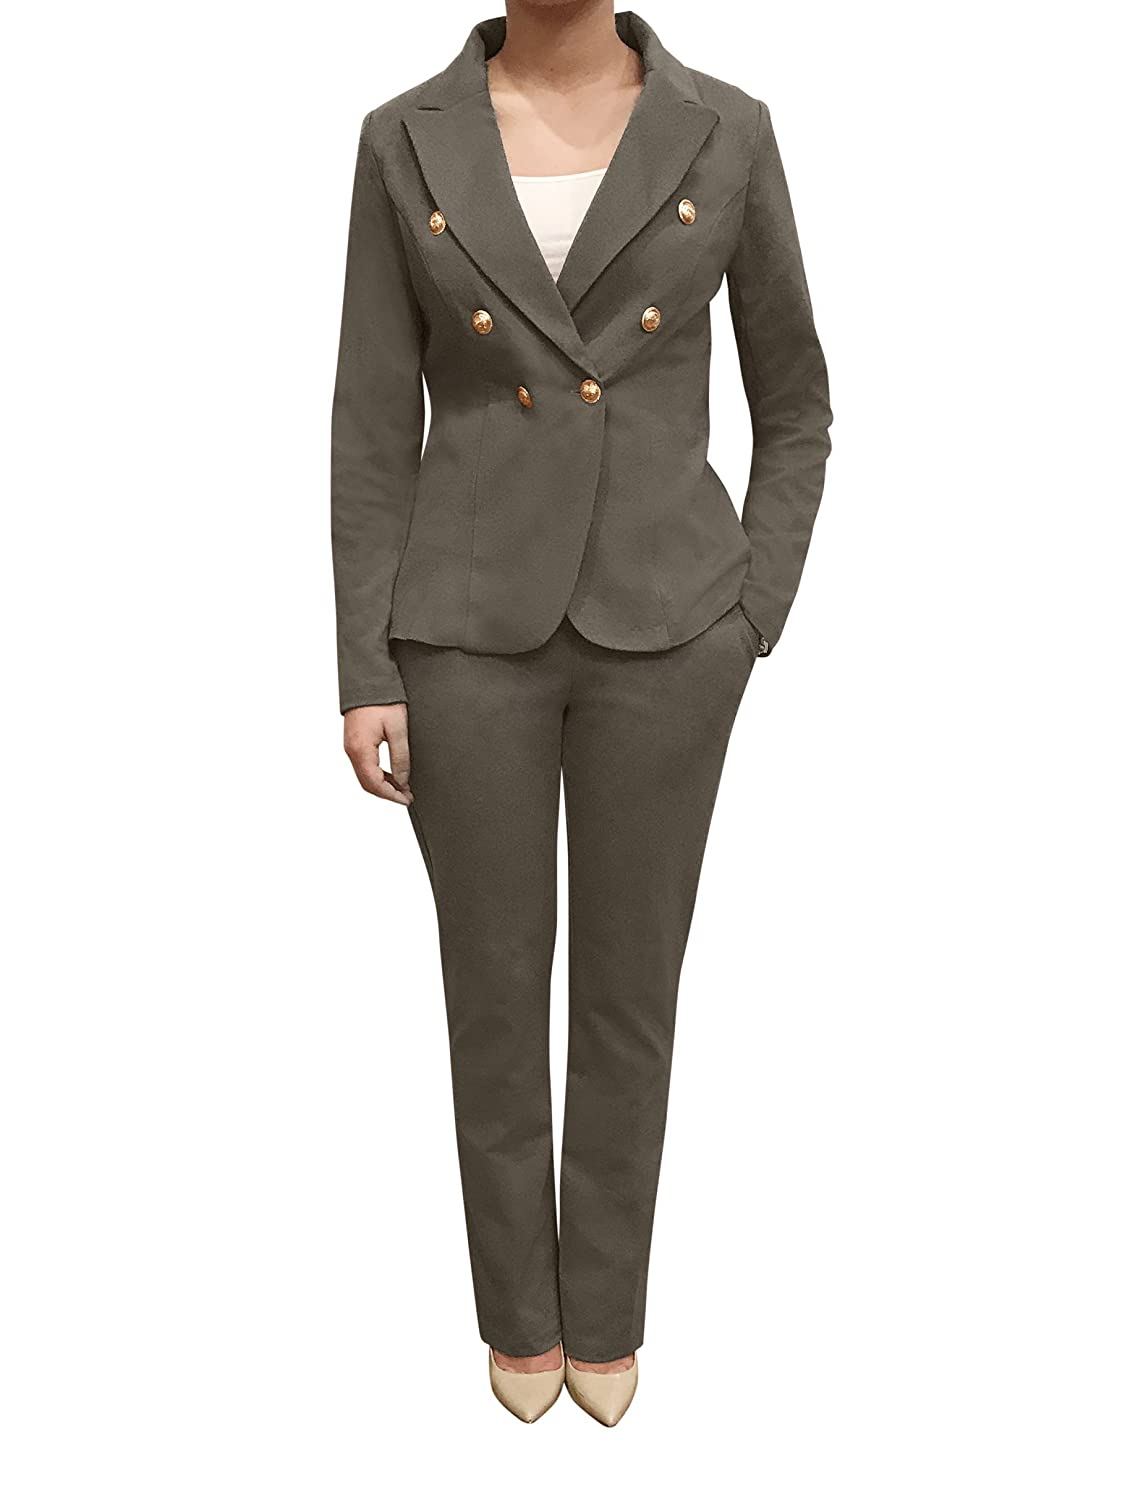 Charcoal OrlyCollection Double Breasted Casual Work Office Blazers for Women Jacket with gold Button on The Sleeves Made in USA